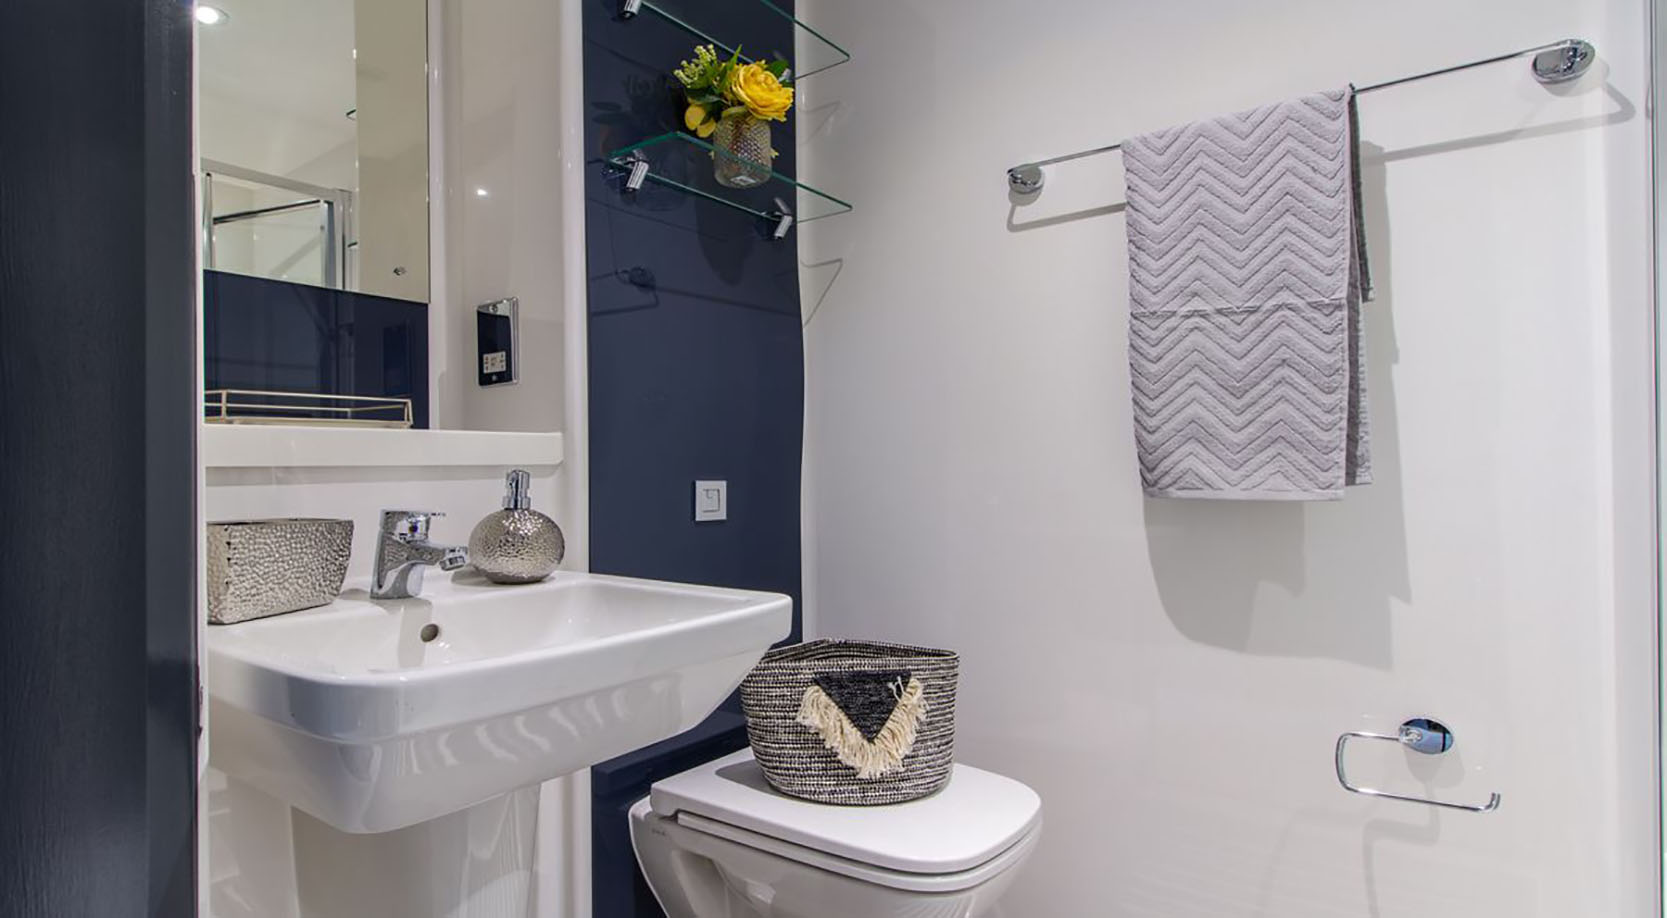 Bathroom at The Residence Coventry, Centre, Newmarket - Citybase Apartments